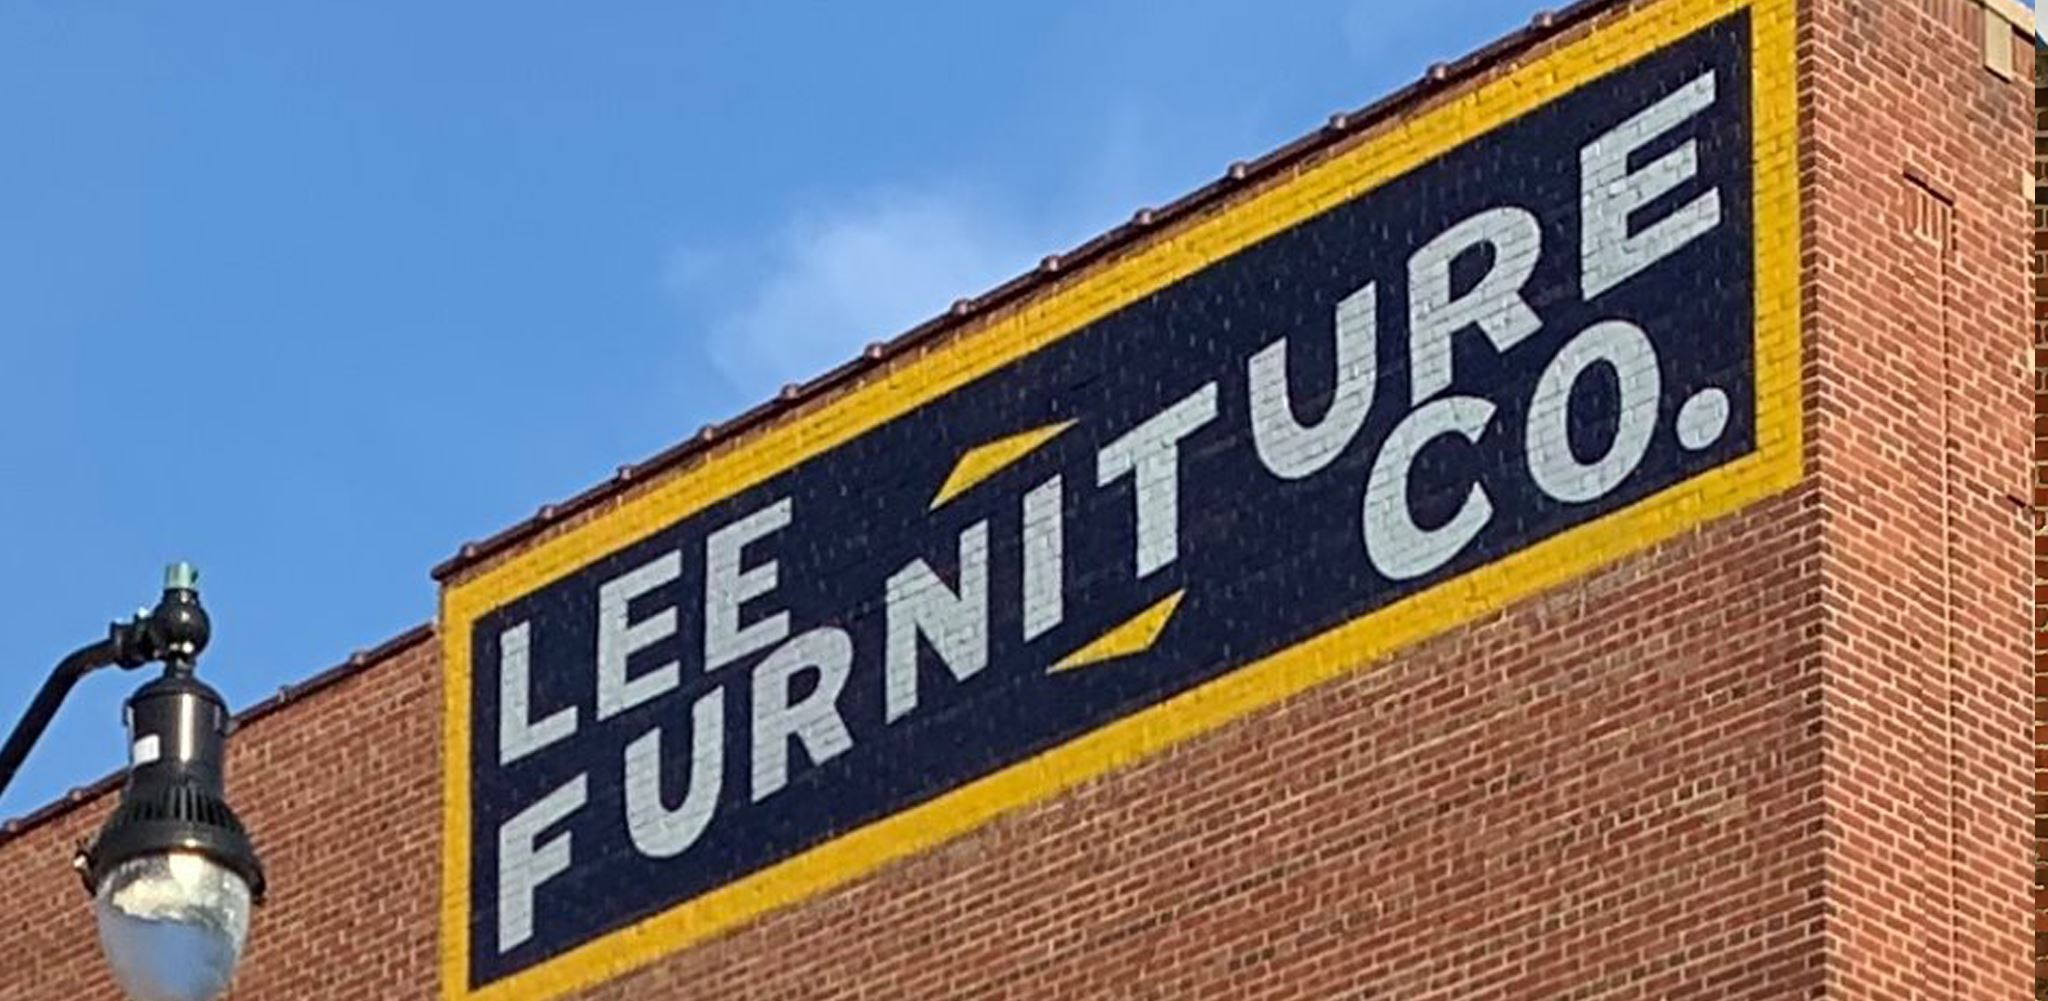 leefurniture